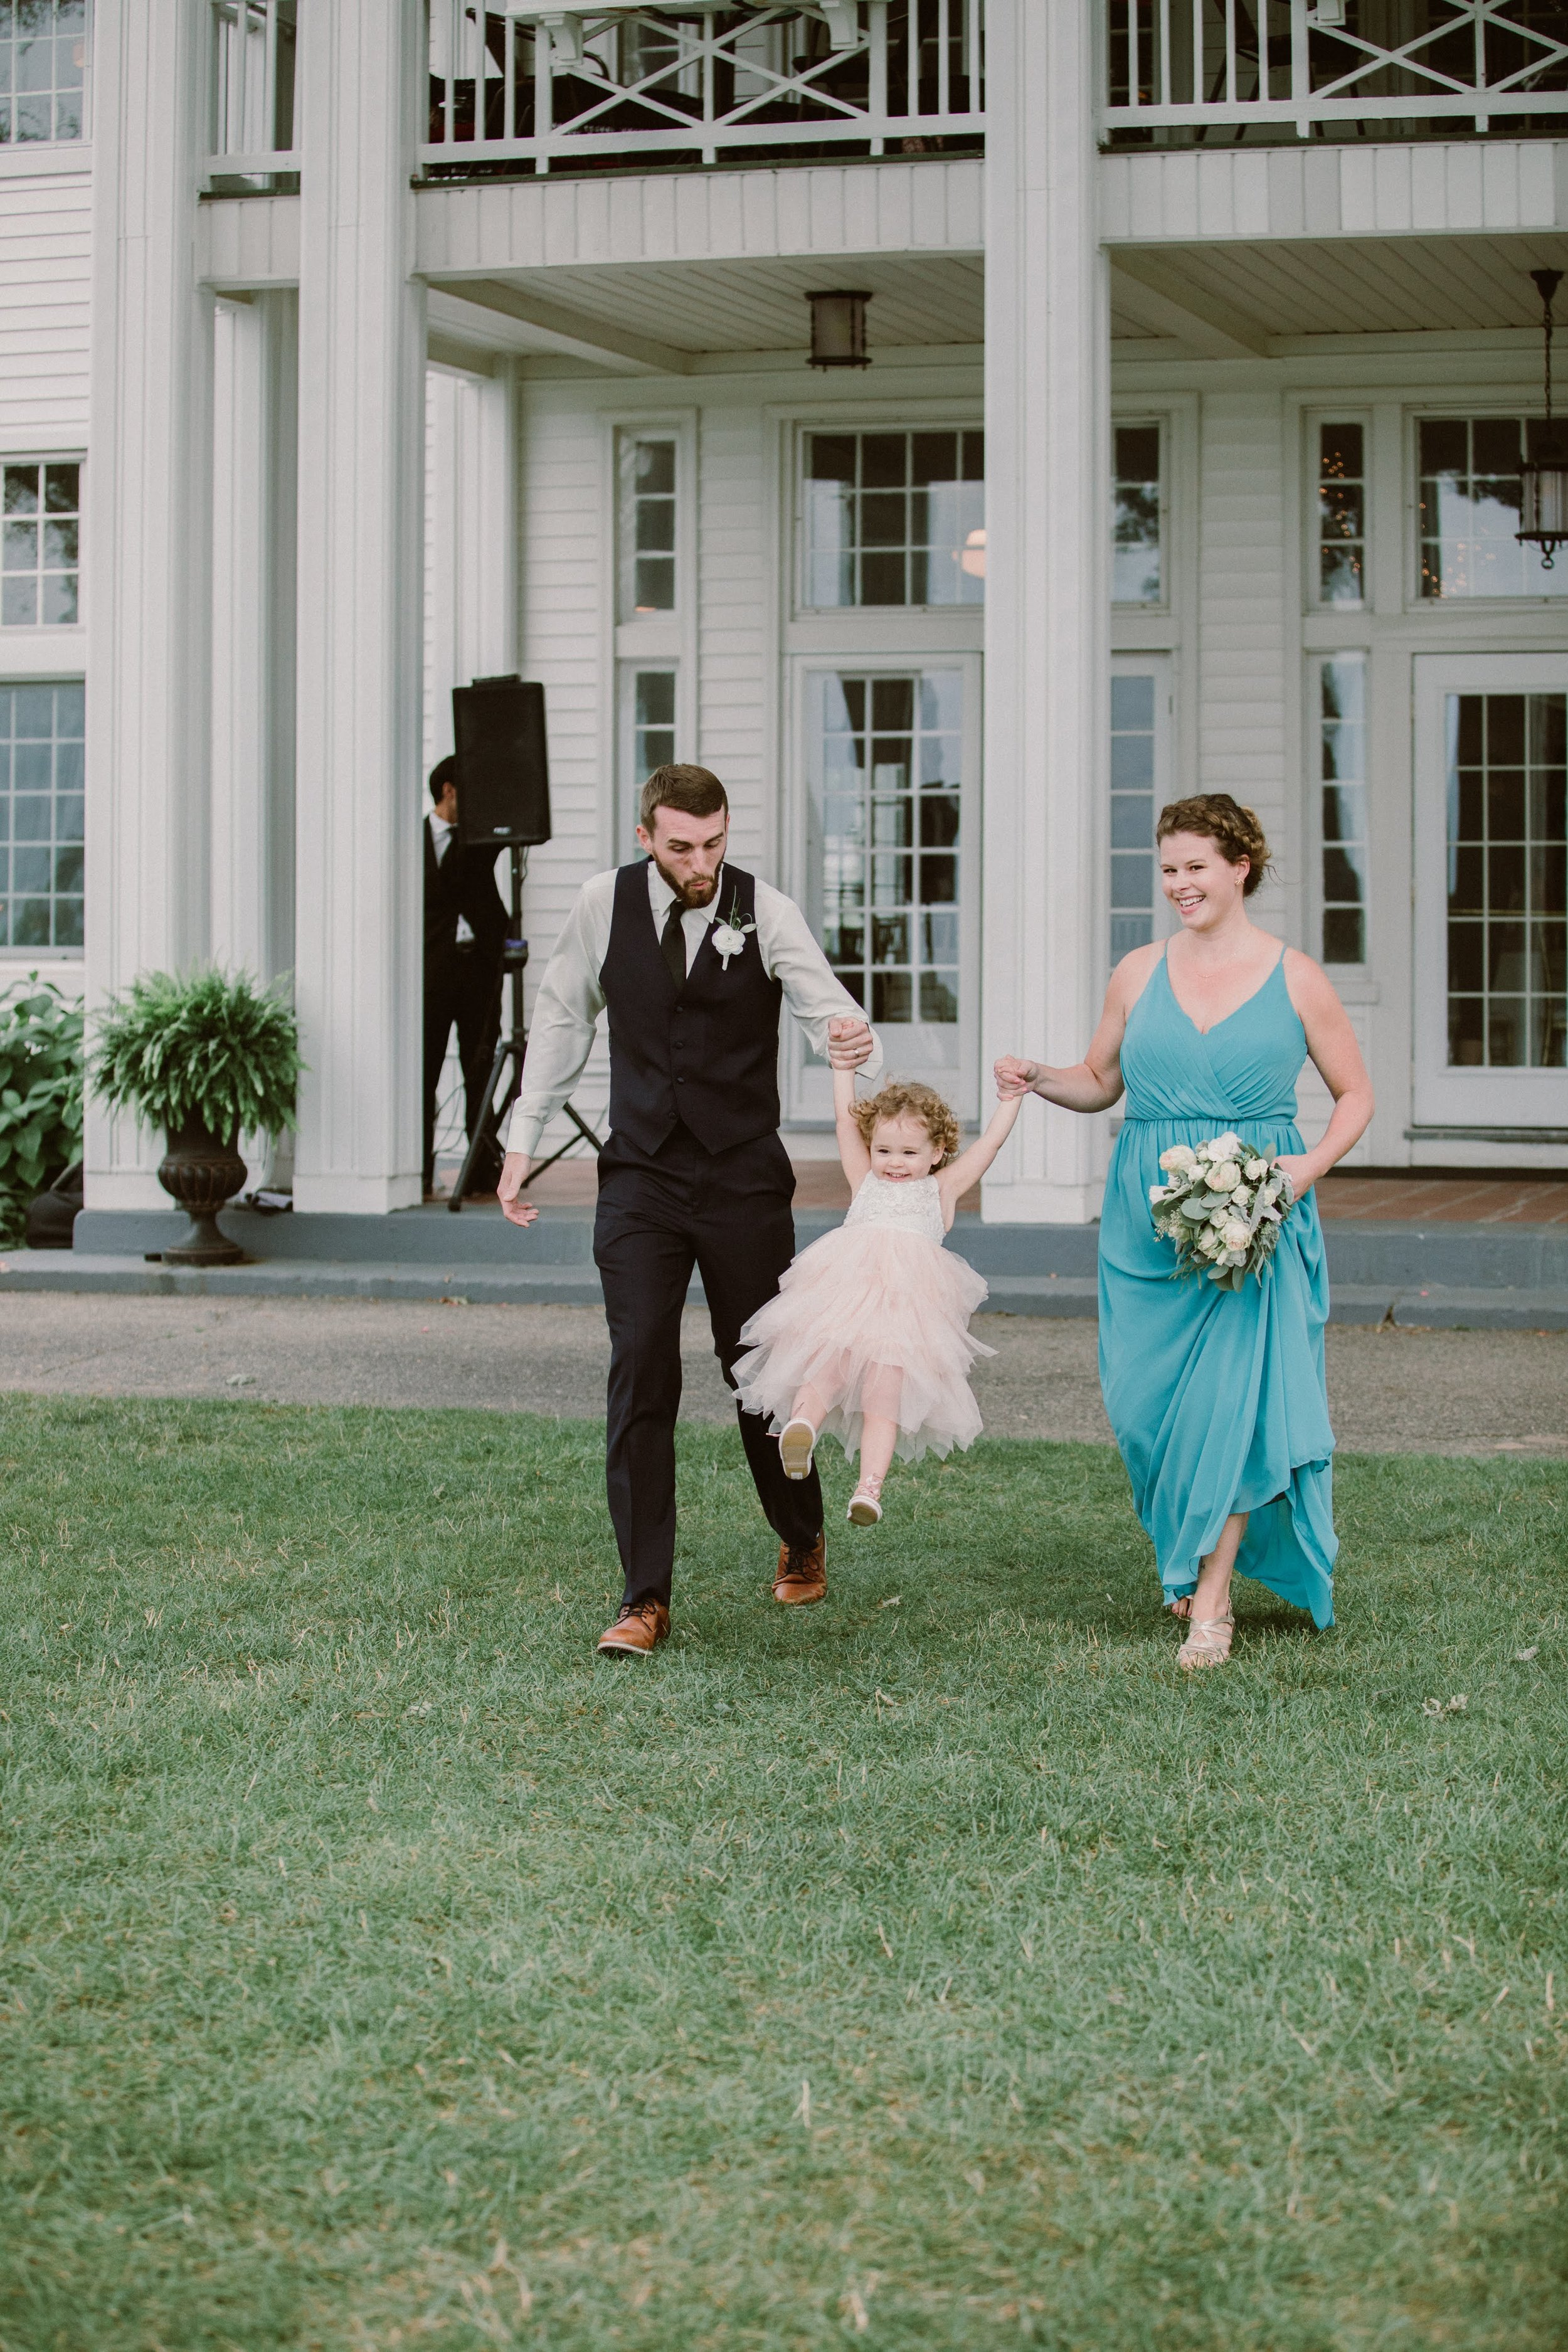 Swinging our way down the aisle!